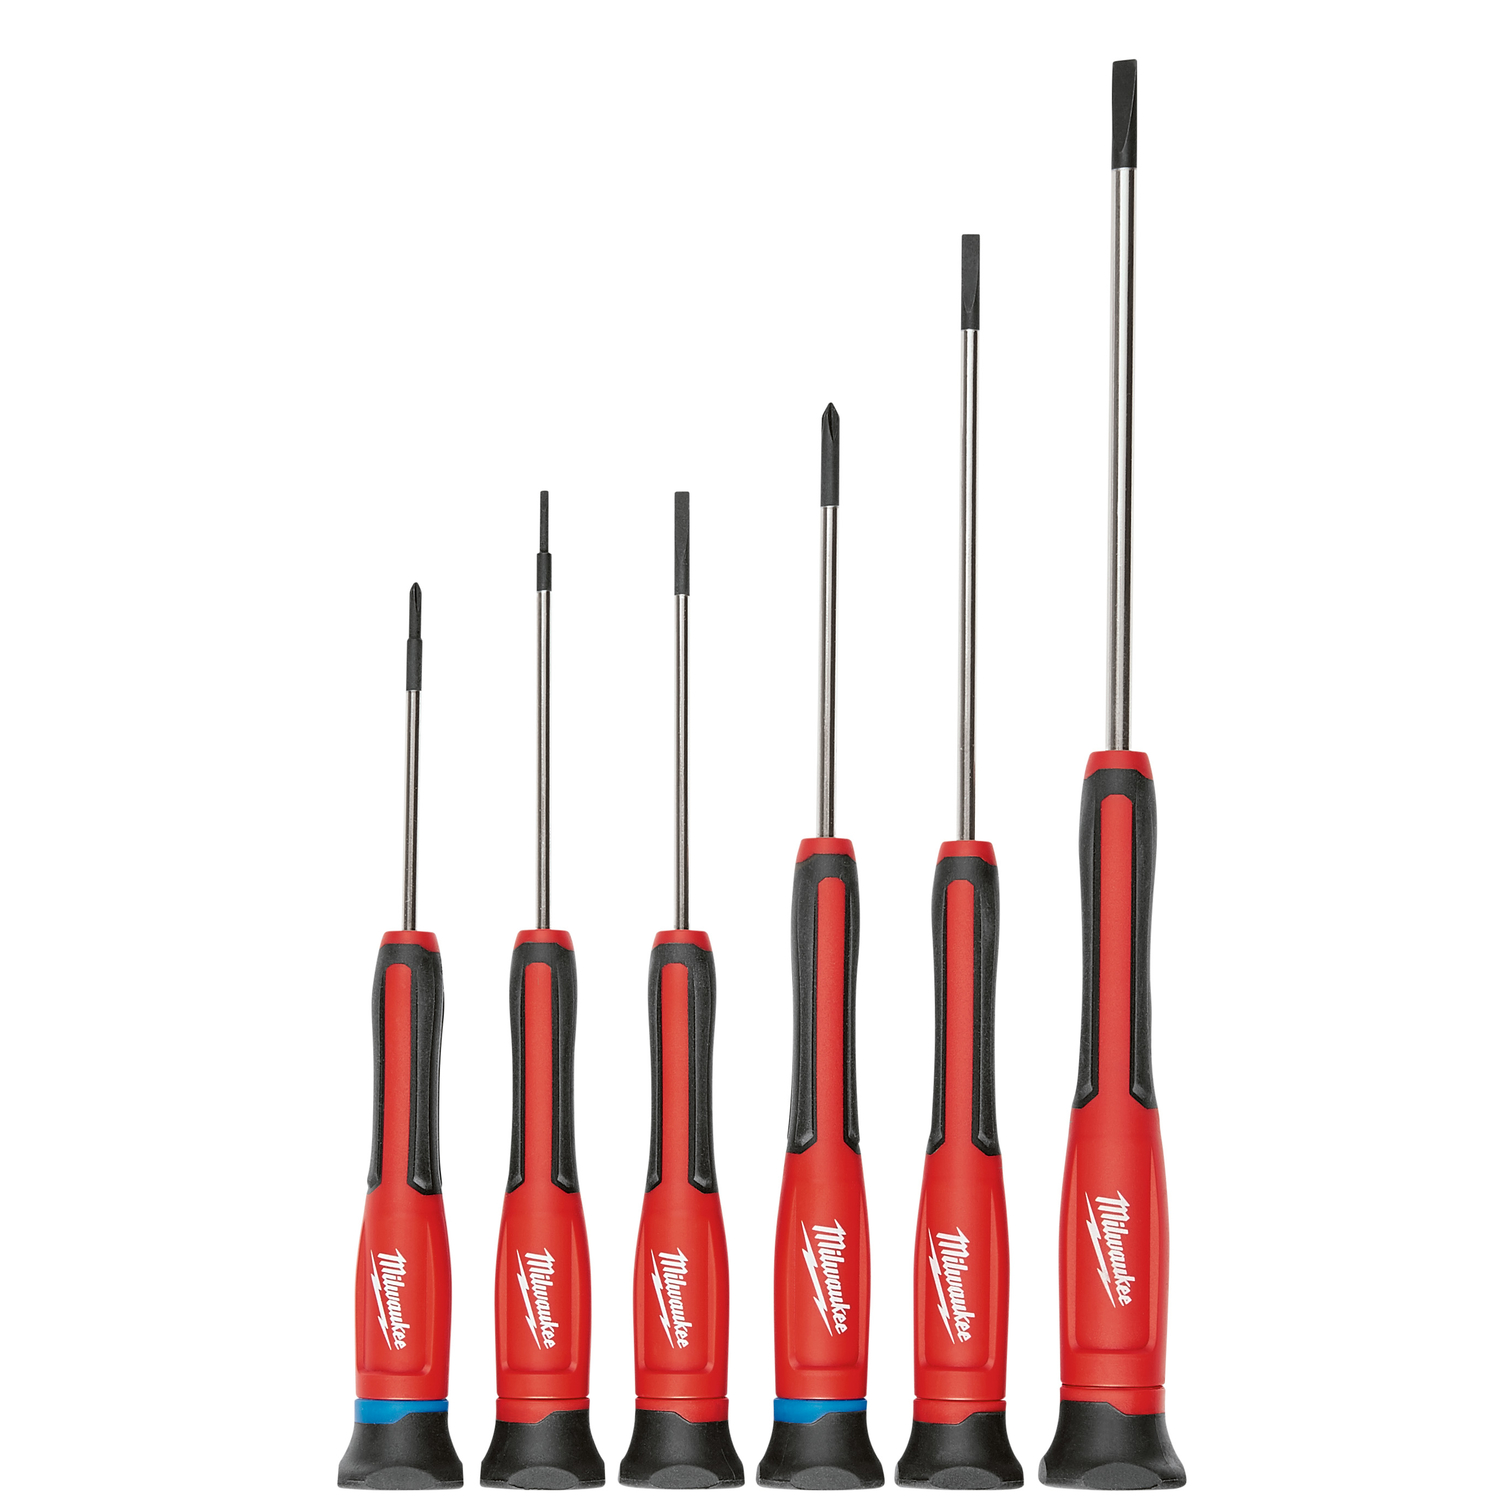 Milwaukee  6 pc. Precision Screwdriver Set  6.0 in. Chrome-Plated Steel  Assorted